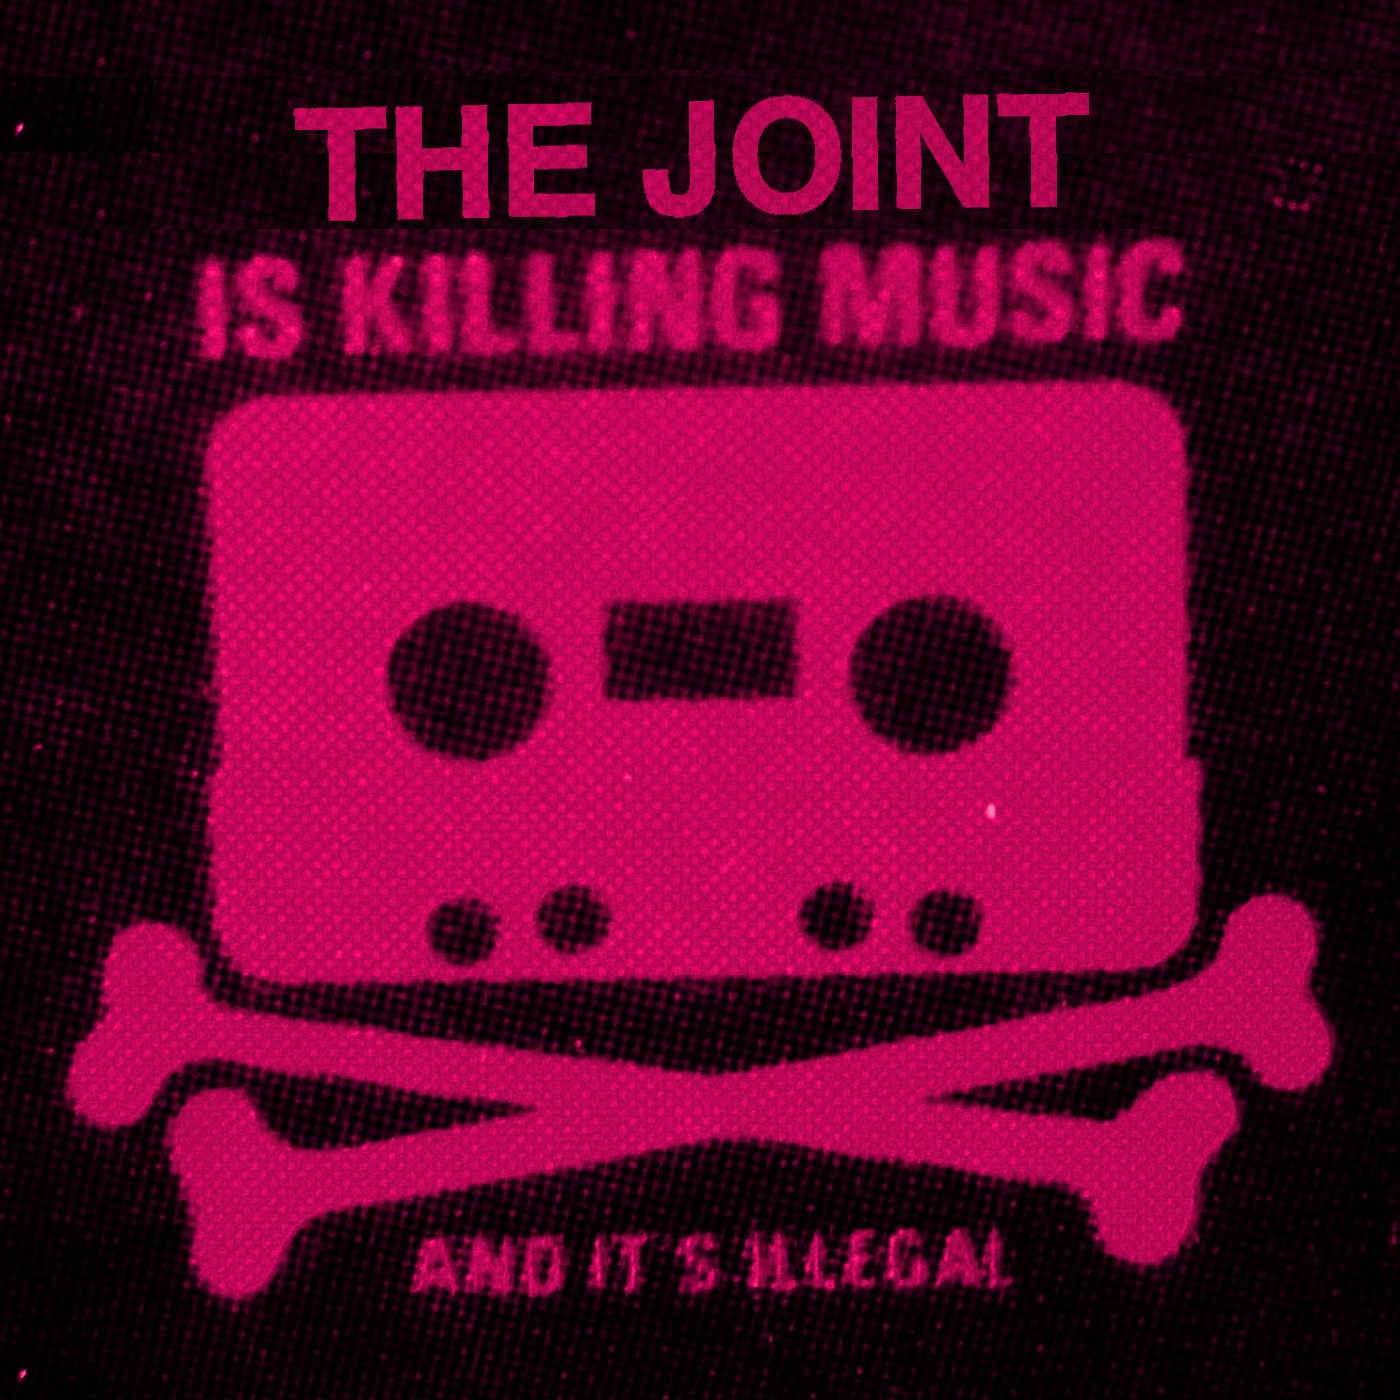 Artwork for The Joint Radio Show - 24th Apr 2010 - Second Hour - 1pm-2pm - m4a/aac